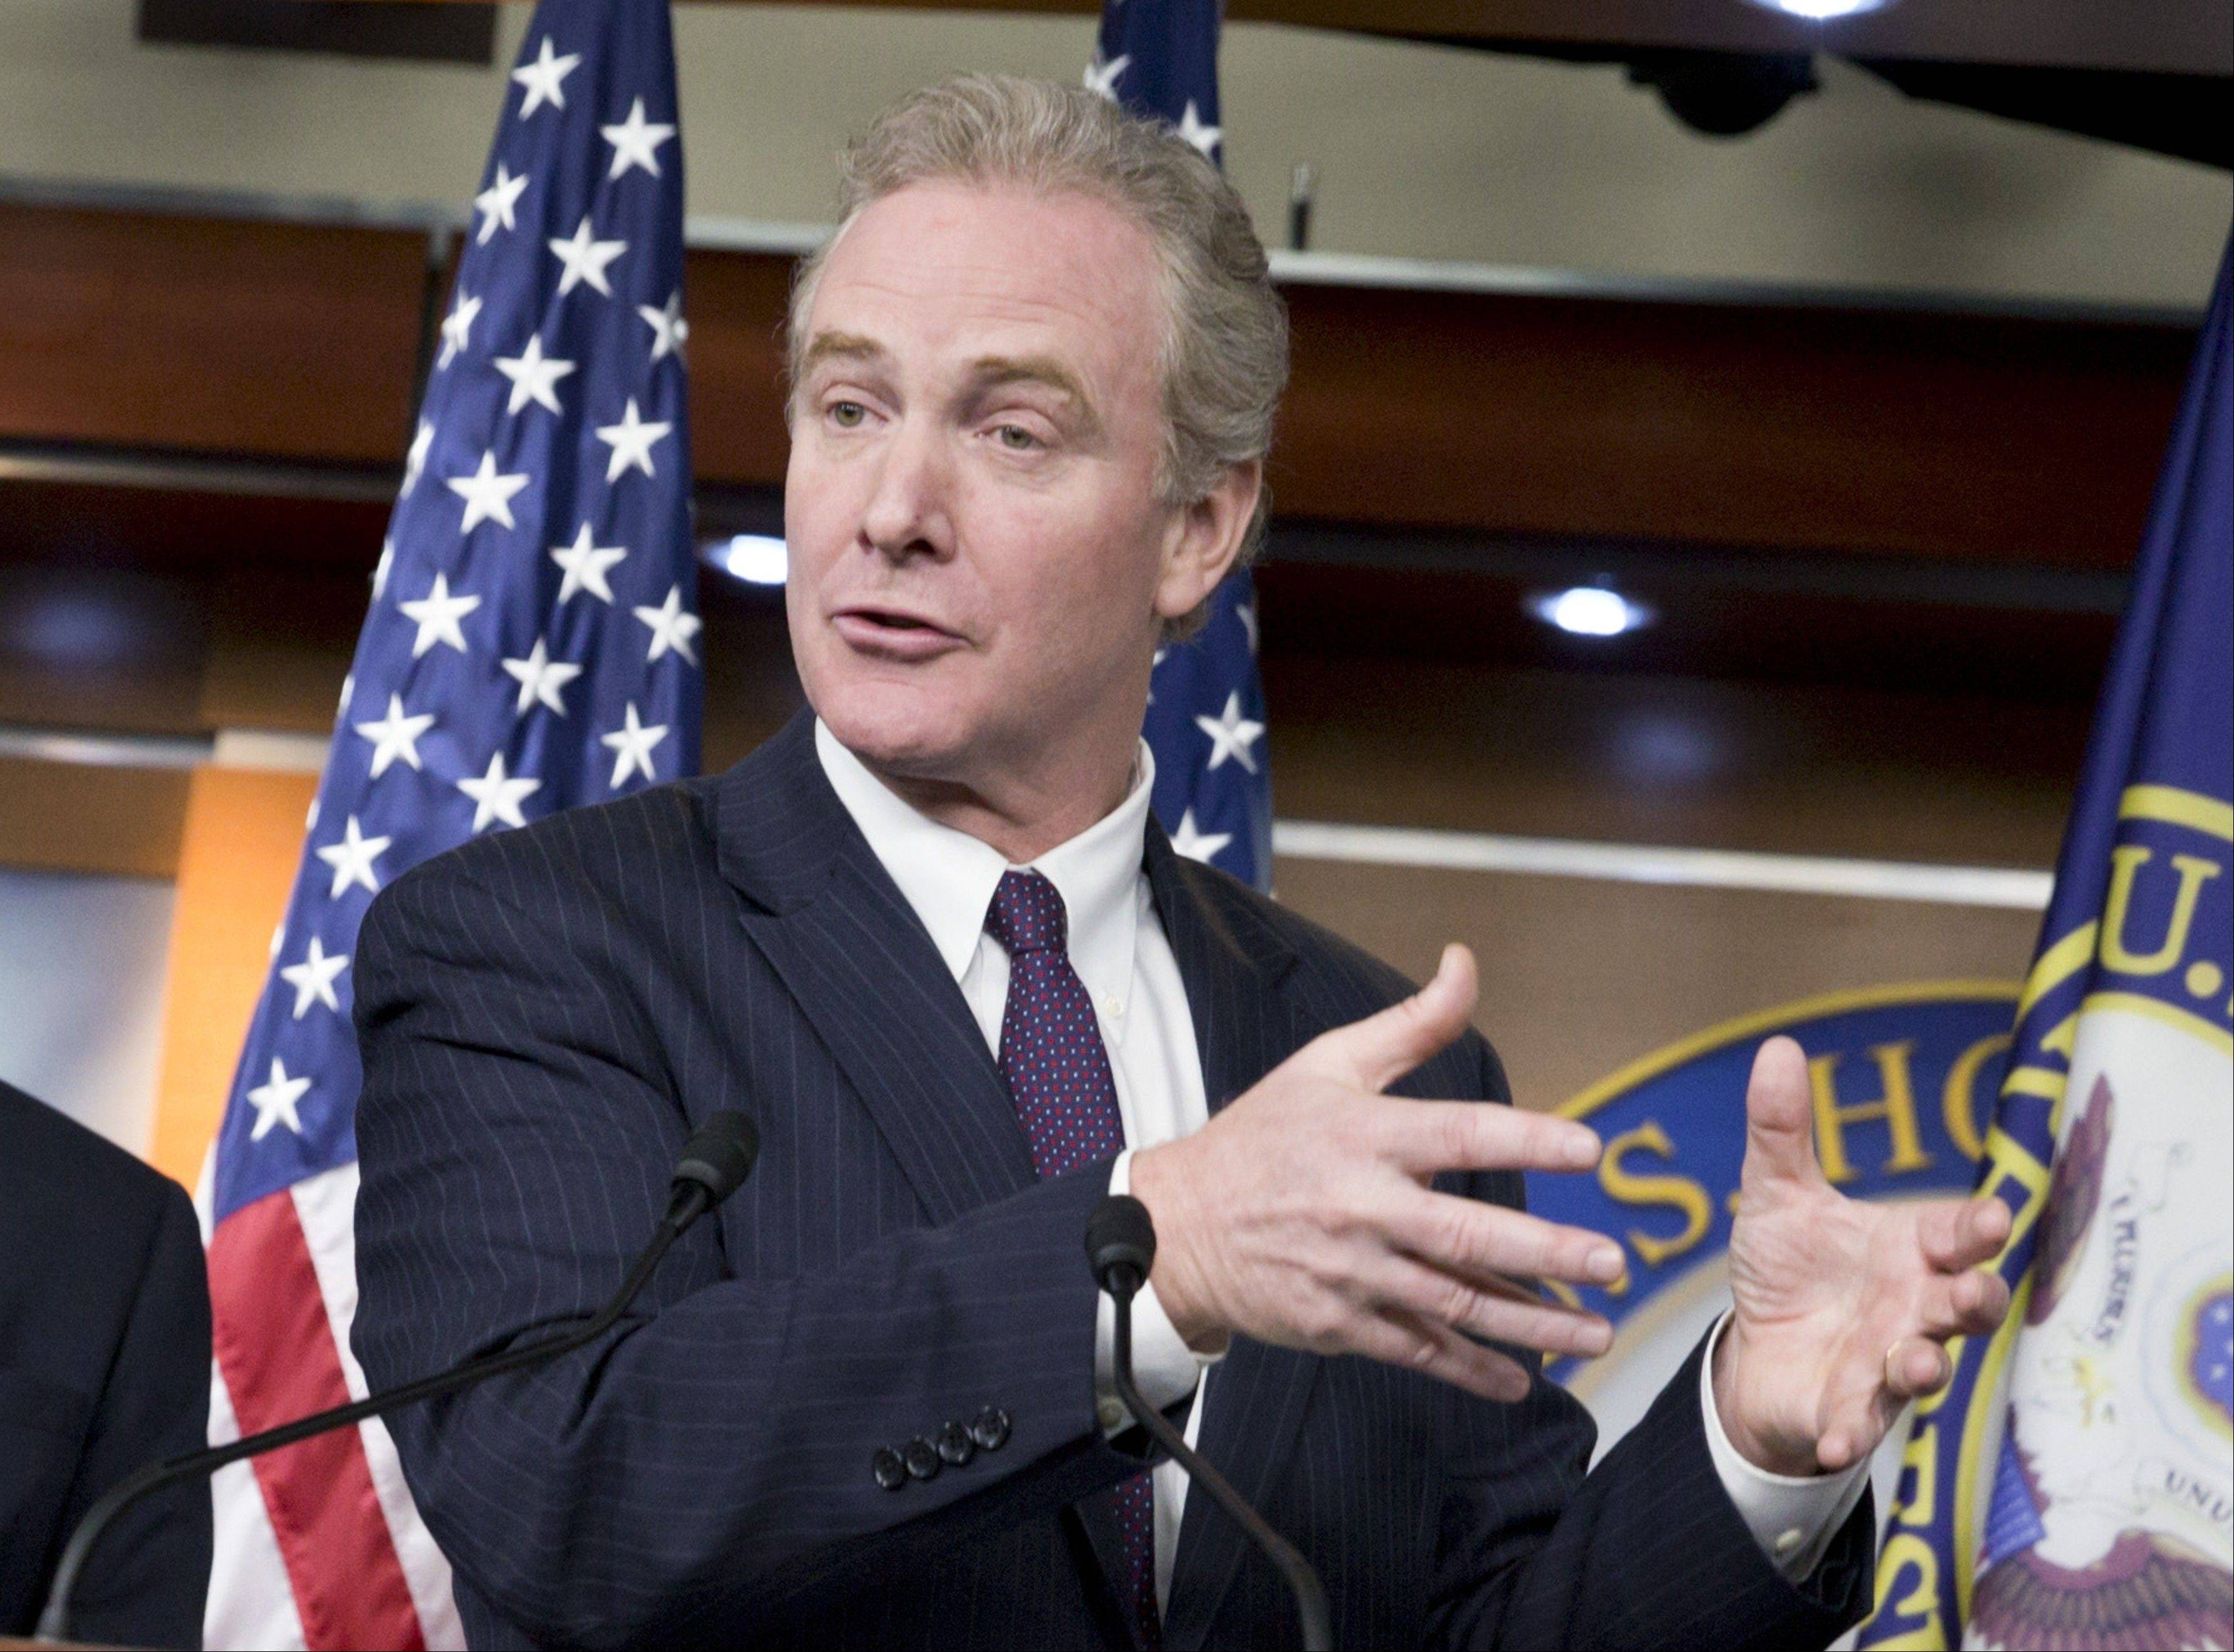 Rep. Chris Van Hollen, the ranking Democrat of the House Budget Committee said he signed off on the $6 billion increase for new federal employees hired beginning in January after Obama assured him he would propose no new retirement benefit cuts in next year�s budget.